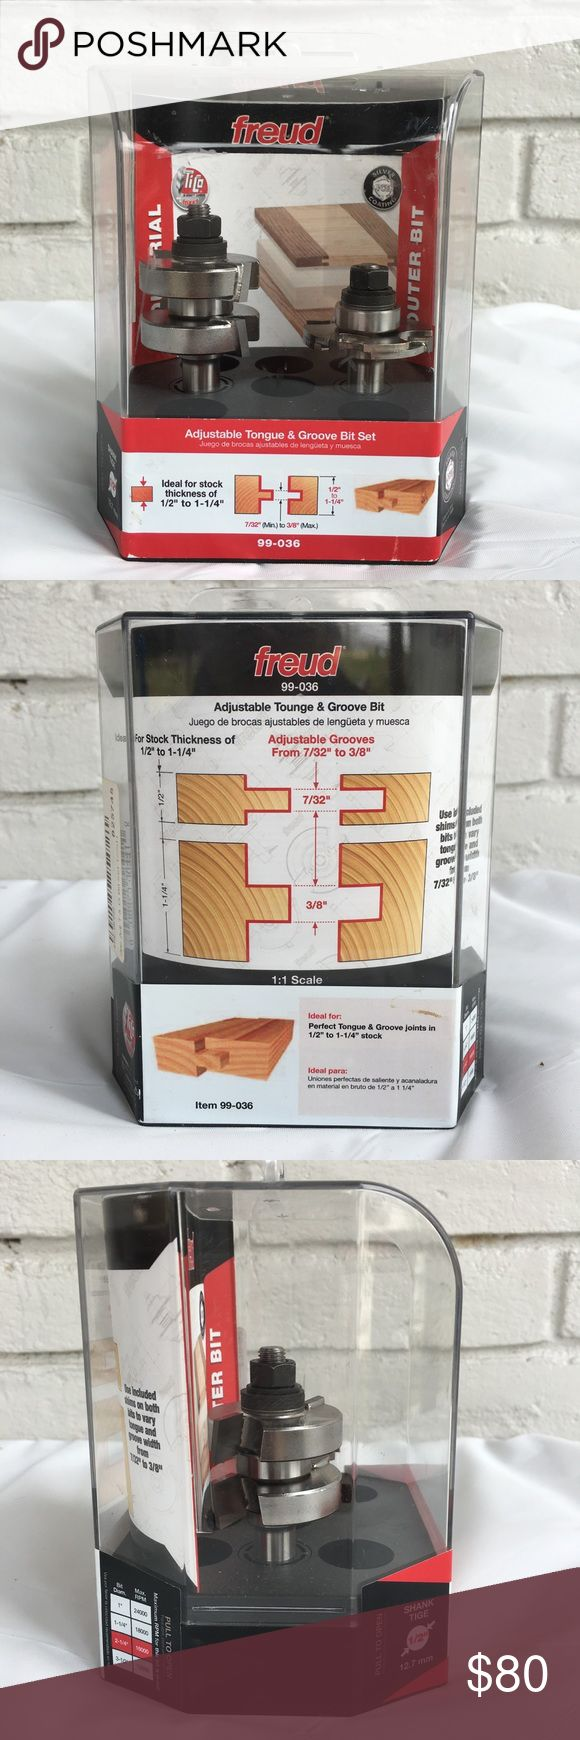 """Freud Adjustable Tongue & Groove Router Bit Set ▫️Ideal for stock thickness of 1/2"""" to 1-1/4"""" and groove widths of 7/32"""" to 3/8"""" Freud Accessories"""